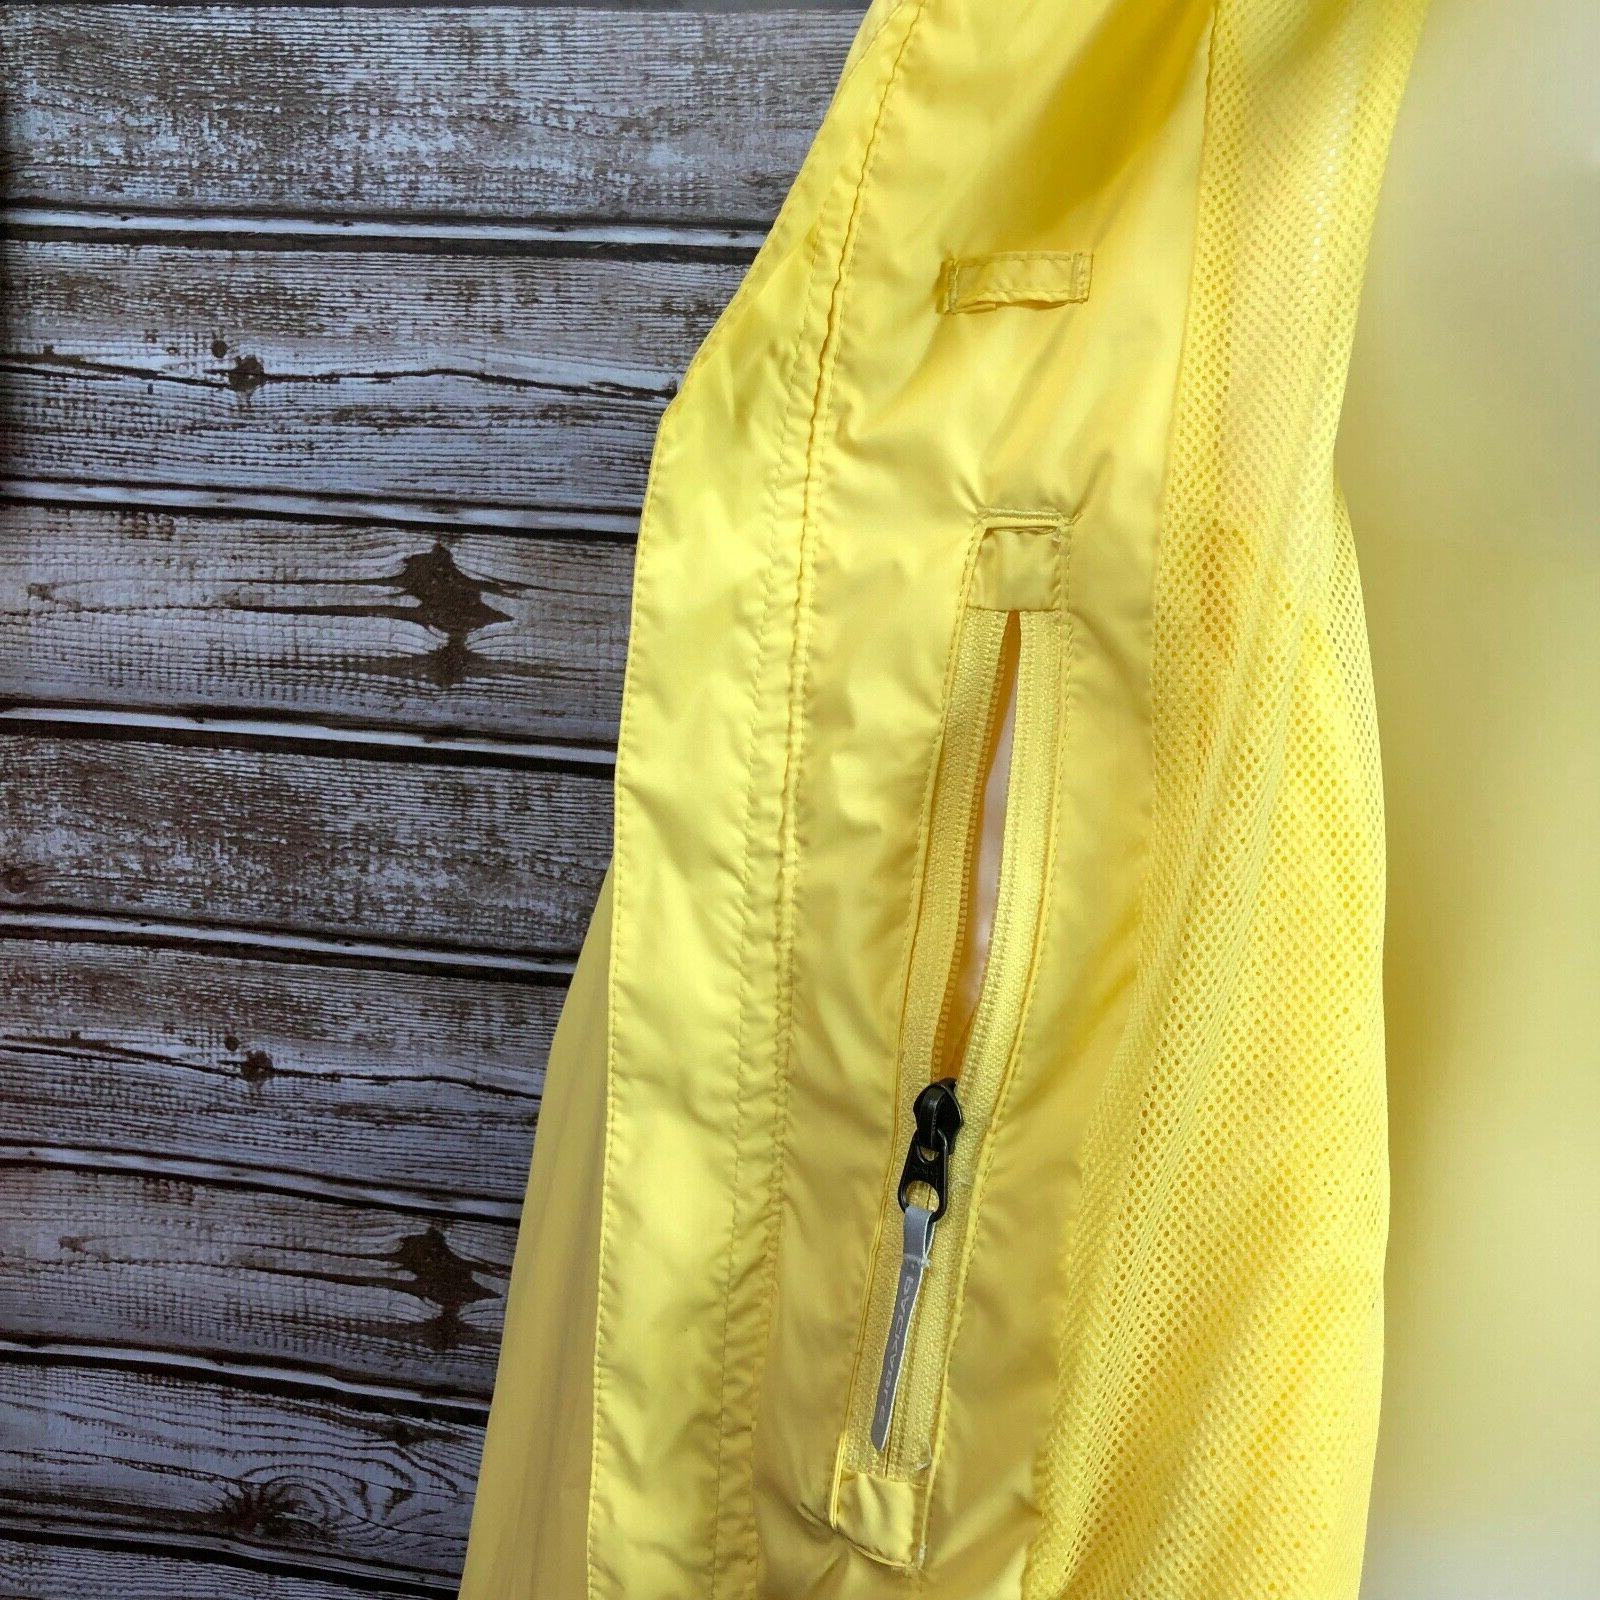 NWT Columbia Plus Long Sleeve Yellow Rain Jacket Waterproof